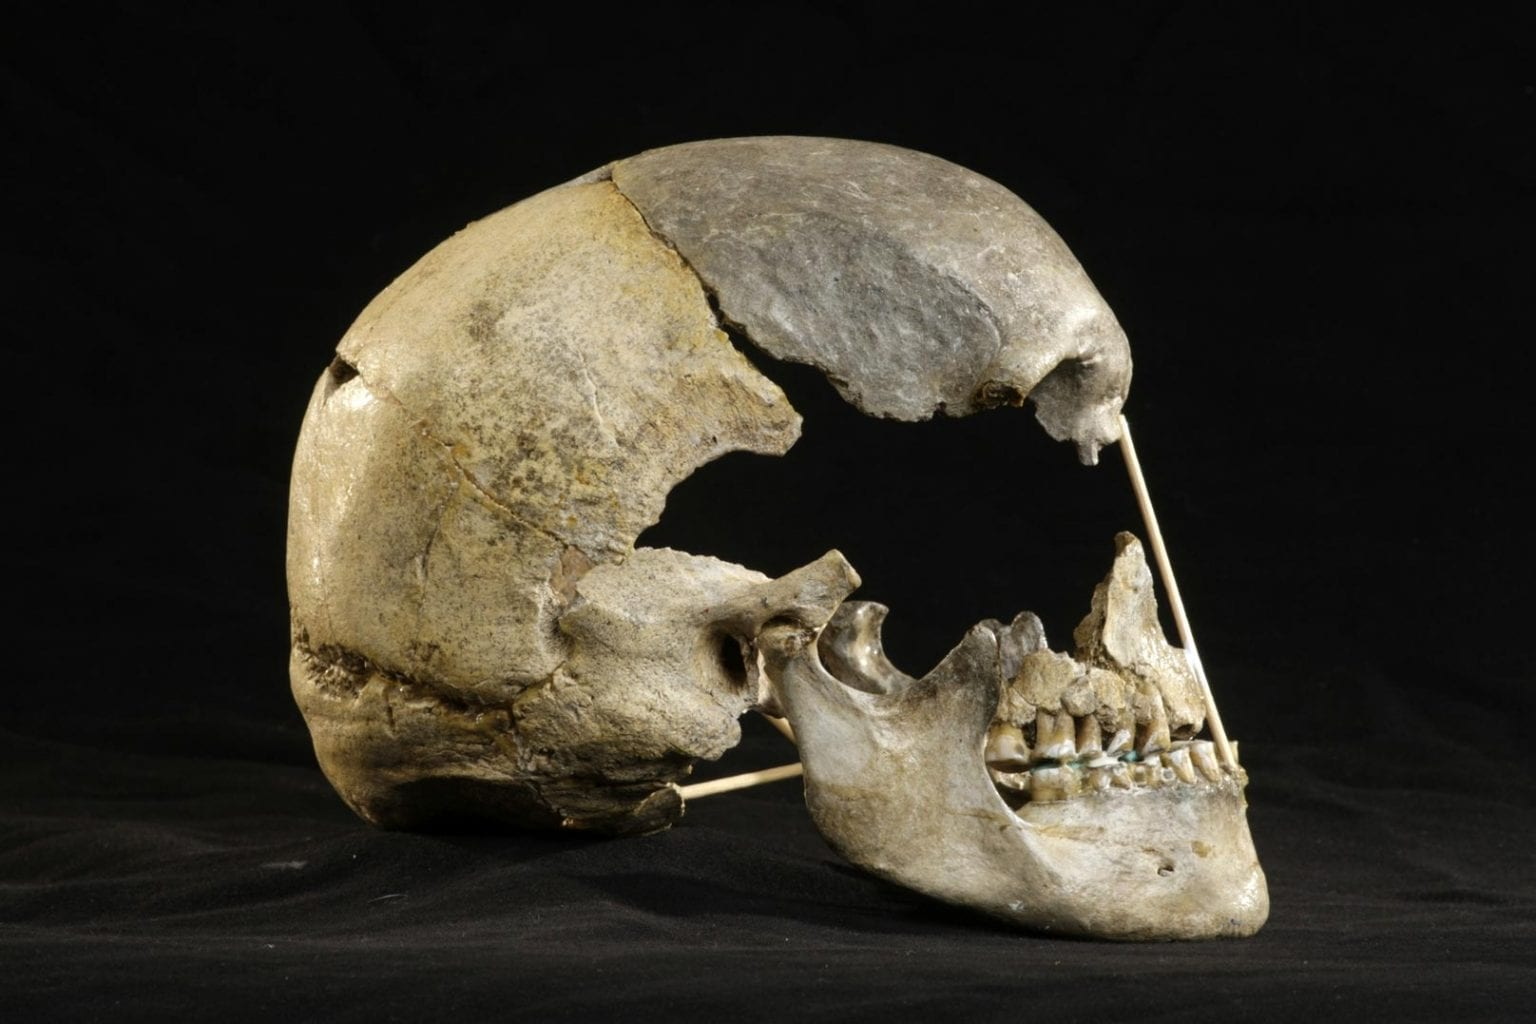 Lateral view of the skull. Credit: Martin Frouz